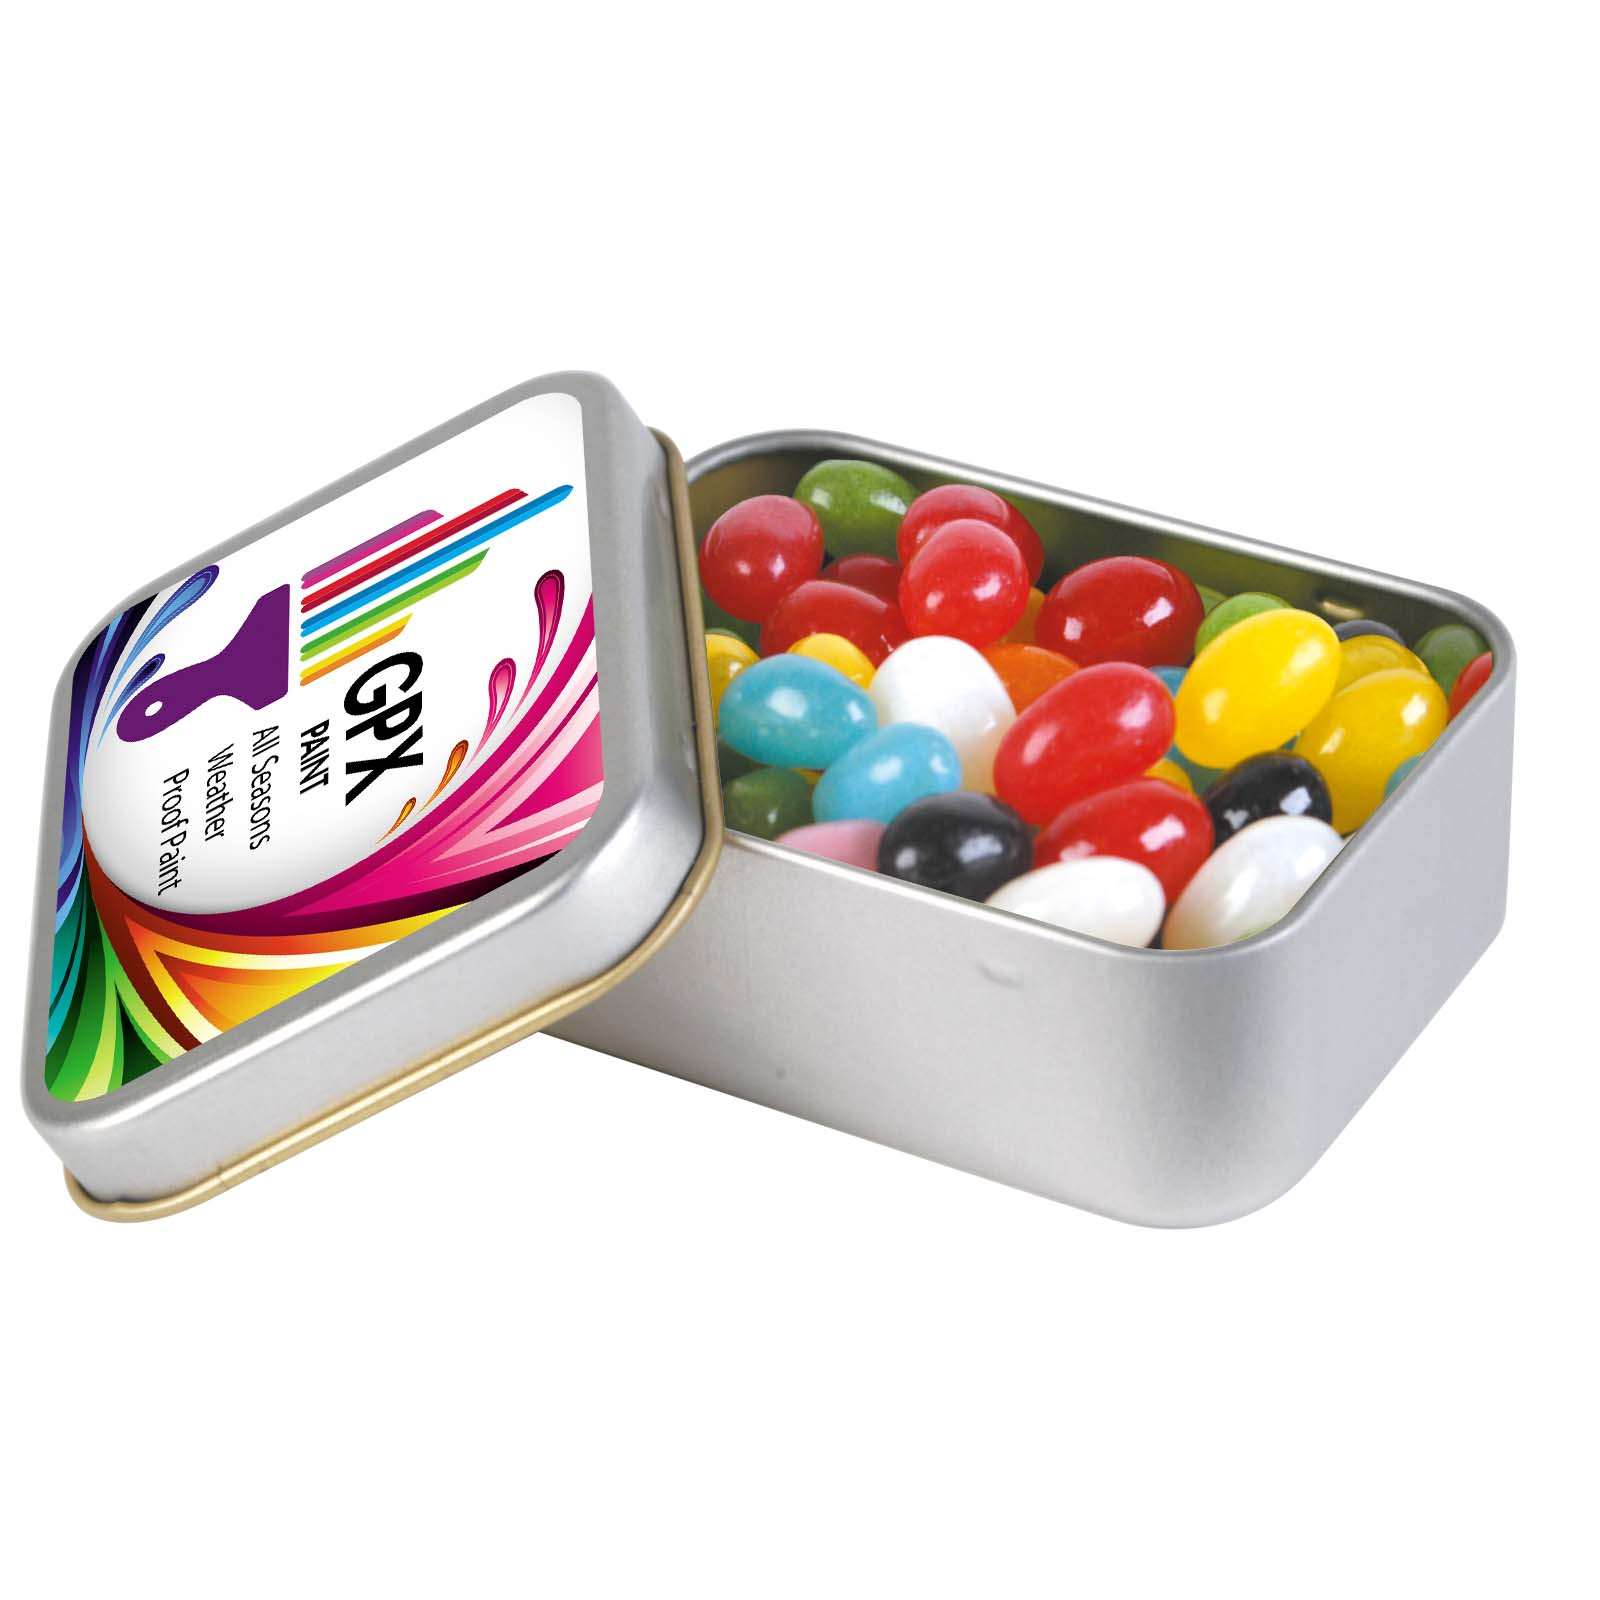 Assorted Colour Mini Jelly Beans in Silver Rectangular Tin - 1 Col 1 Pos Print